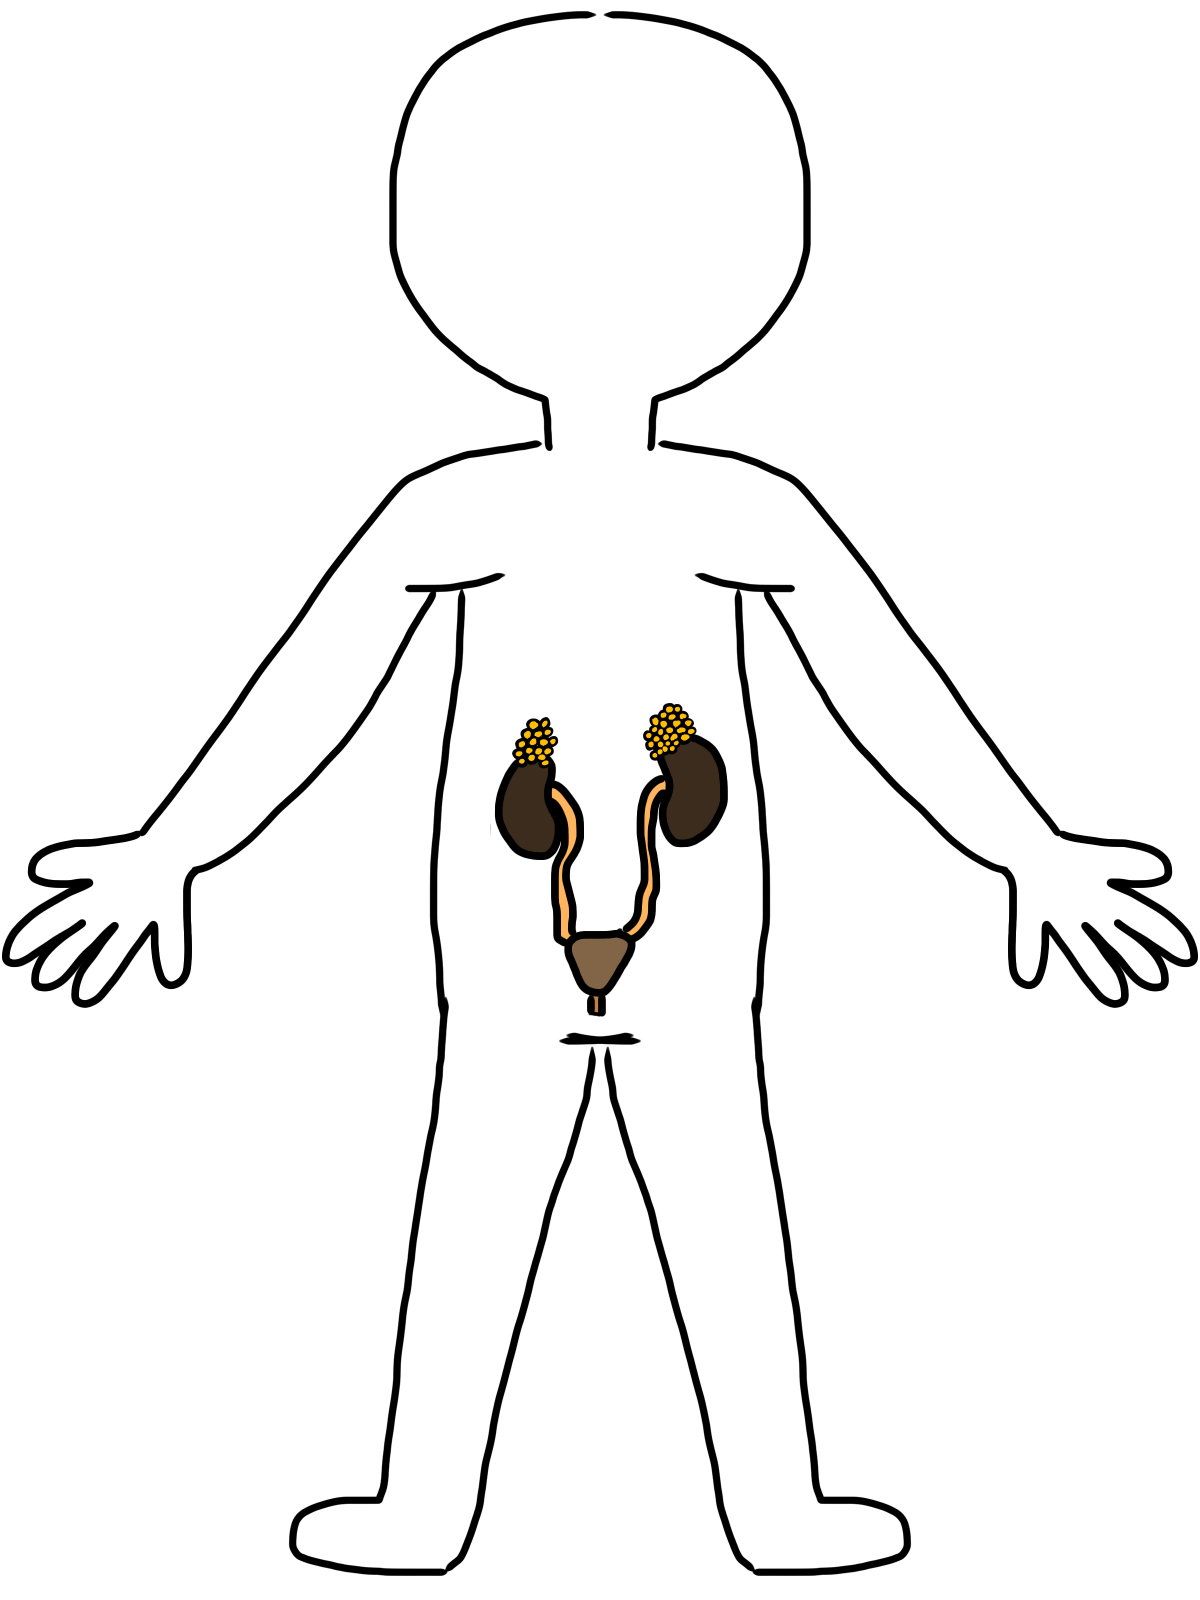 Free Body Cliparts Download Free Clip Art Free Clip Art